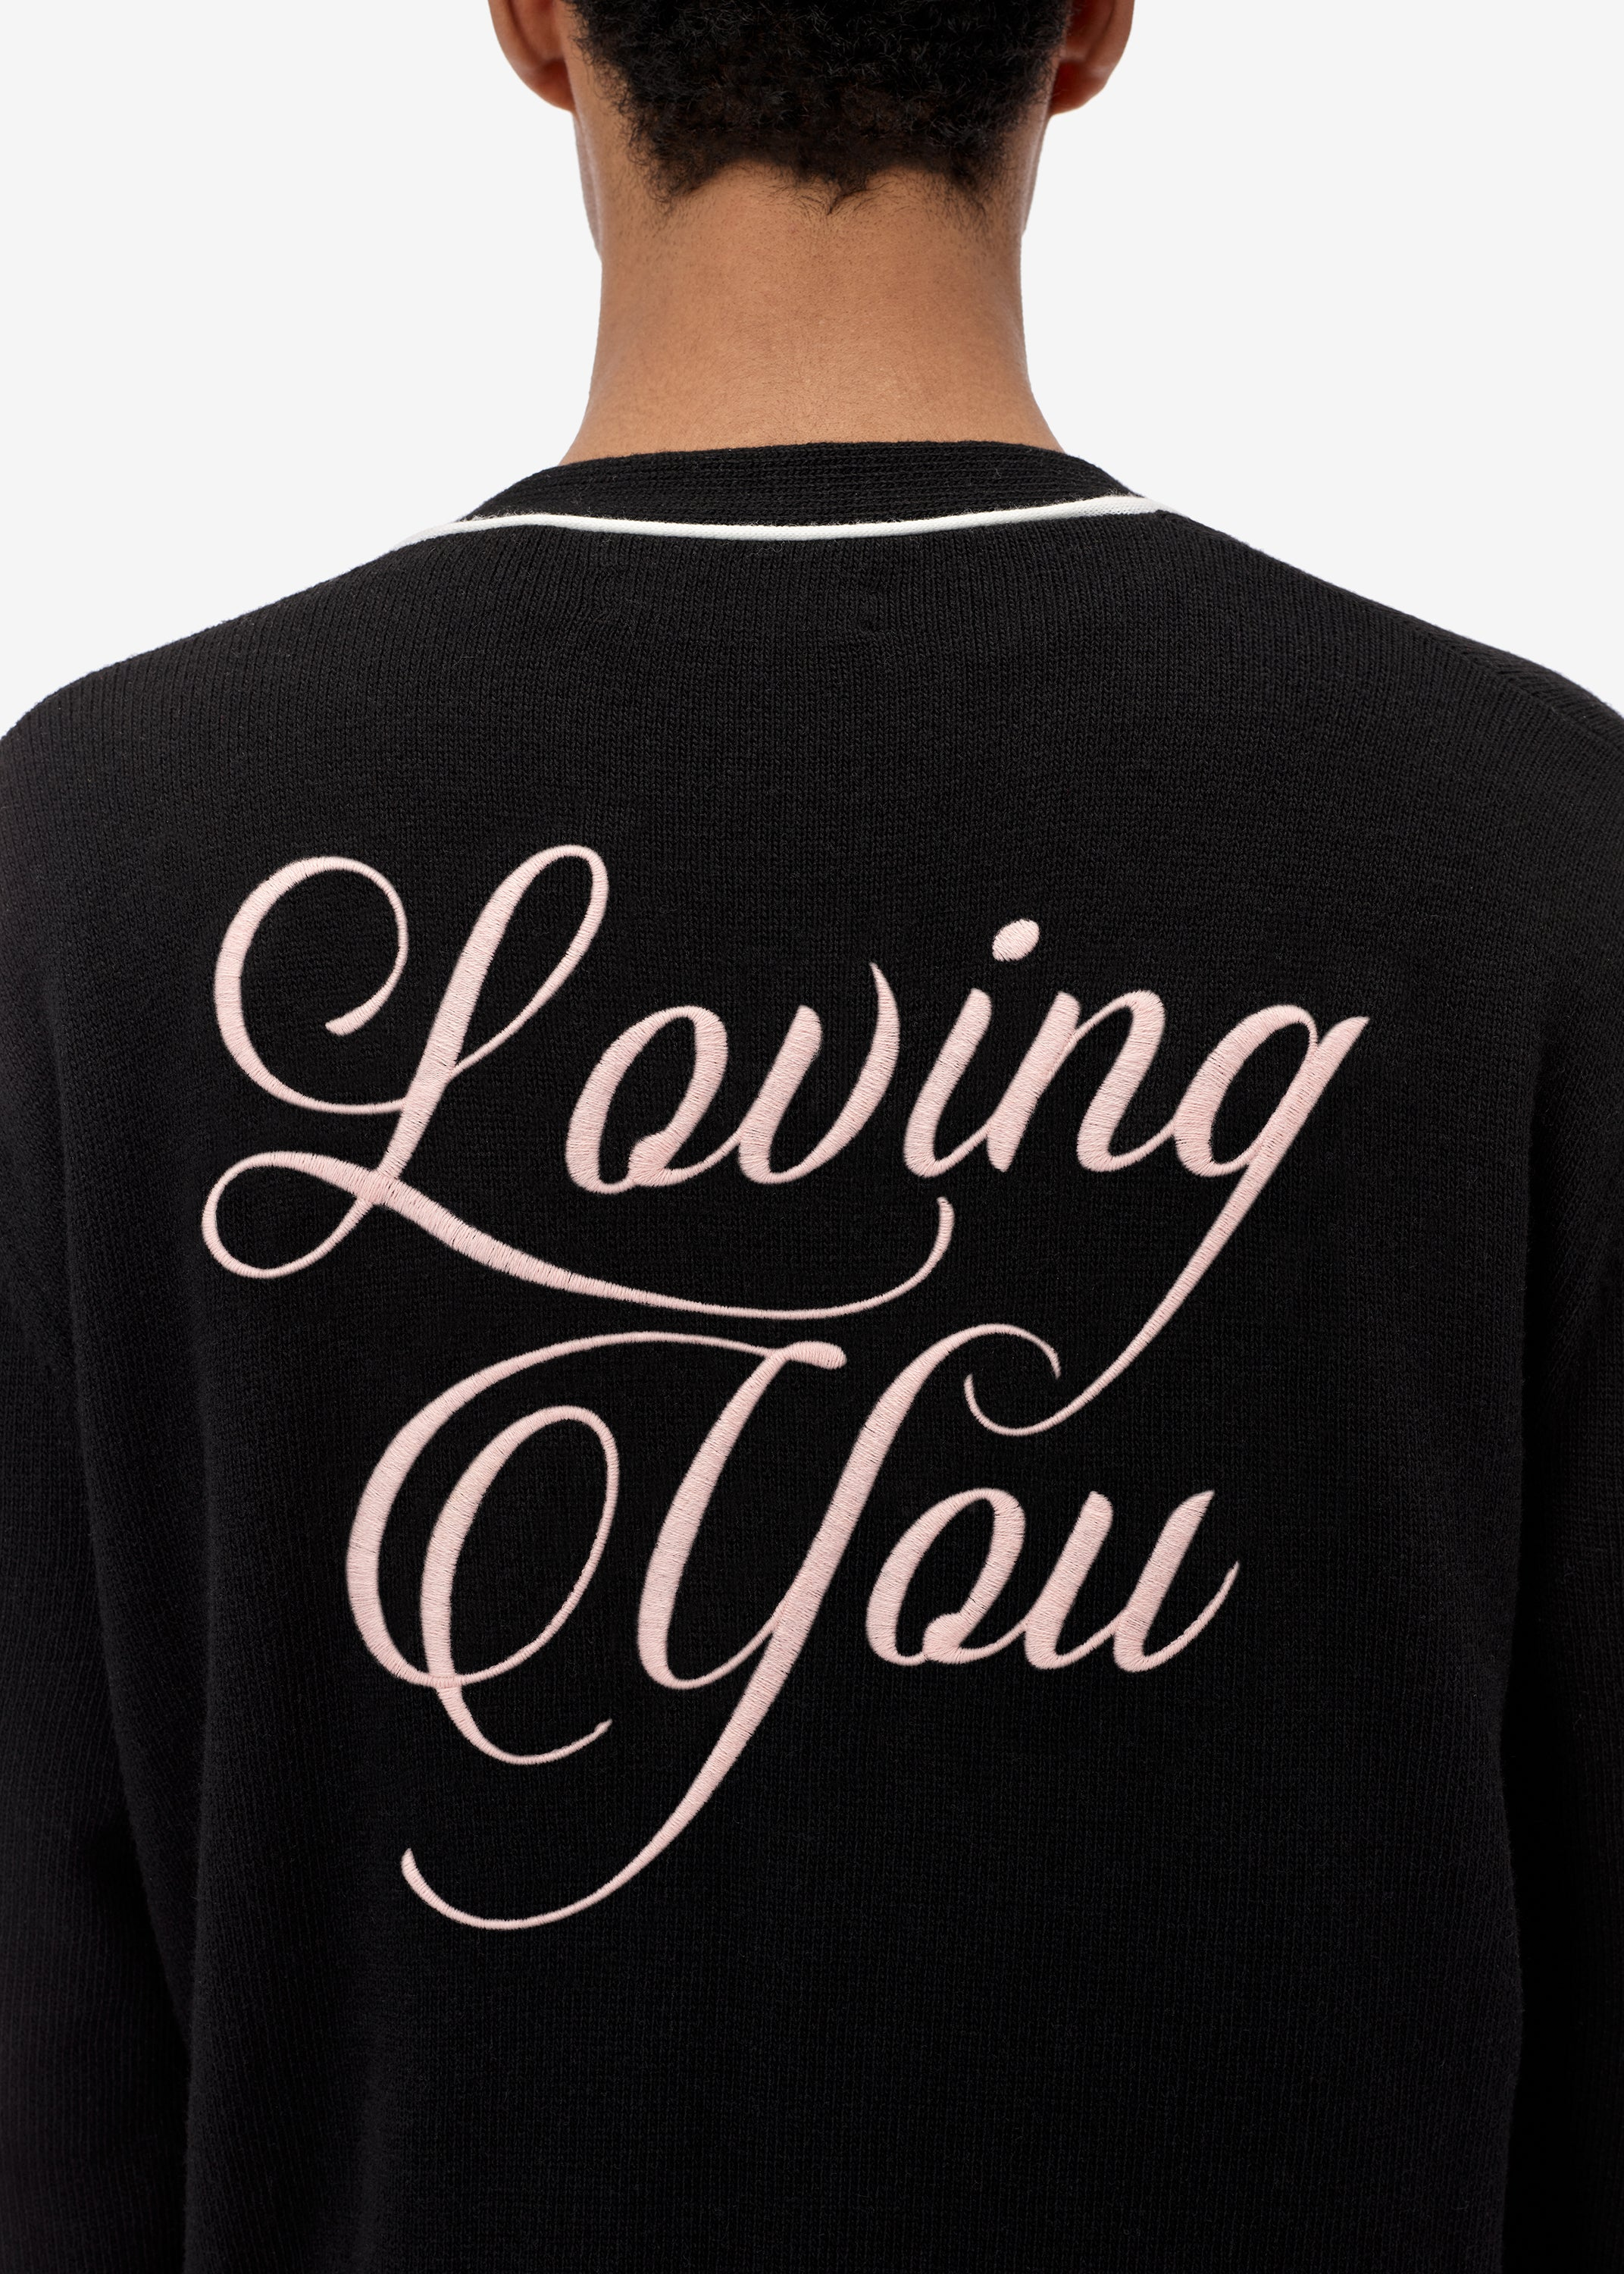 loving-you-cardigan-black-image-5